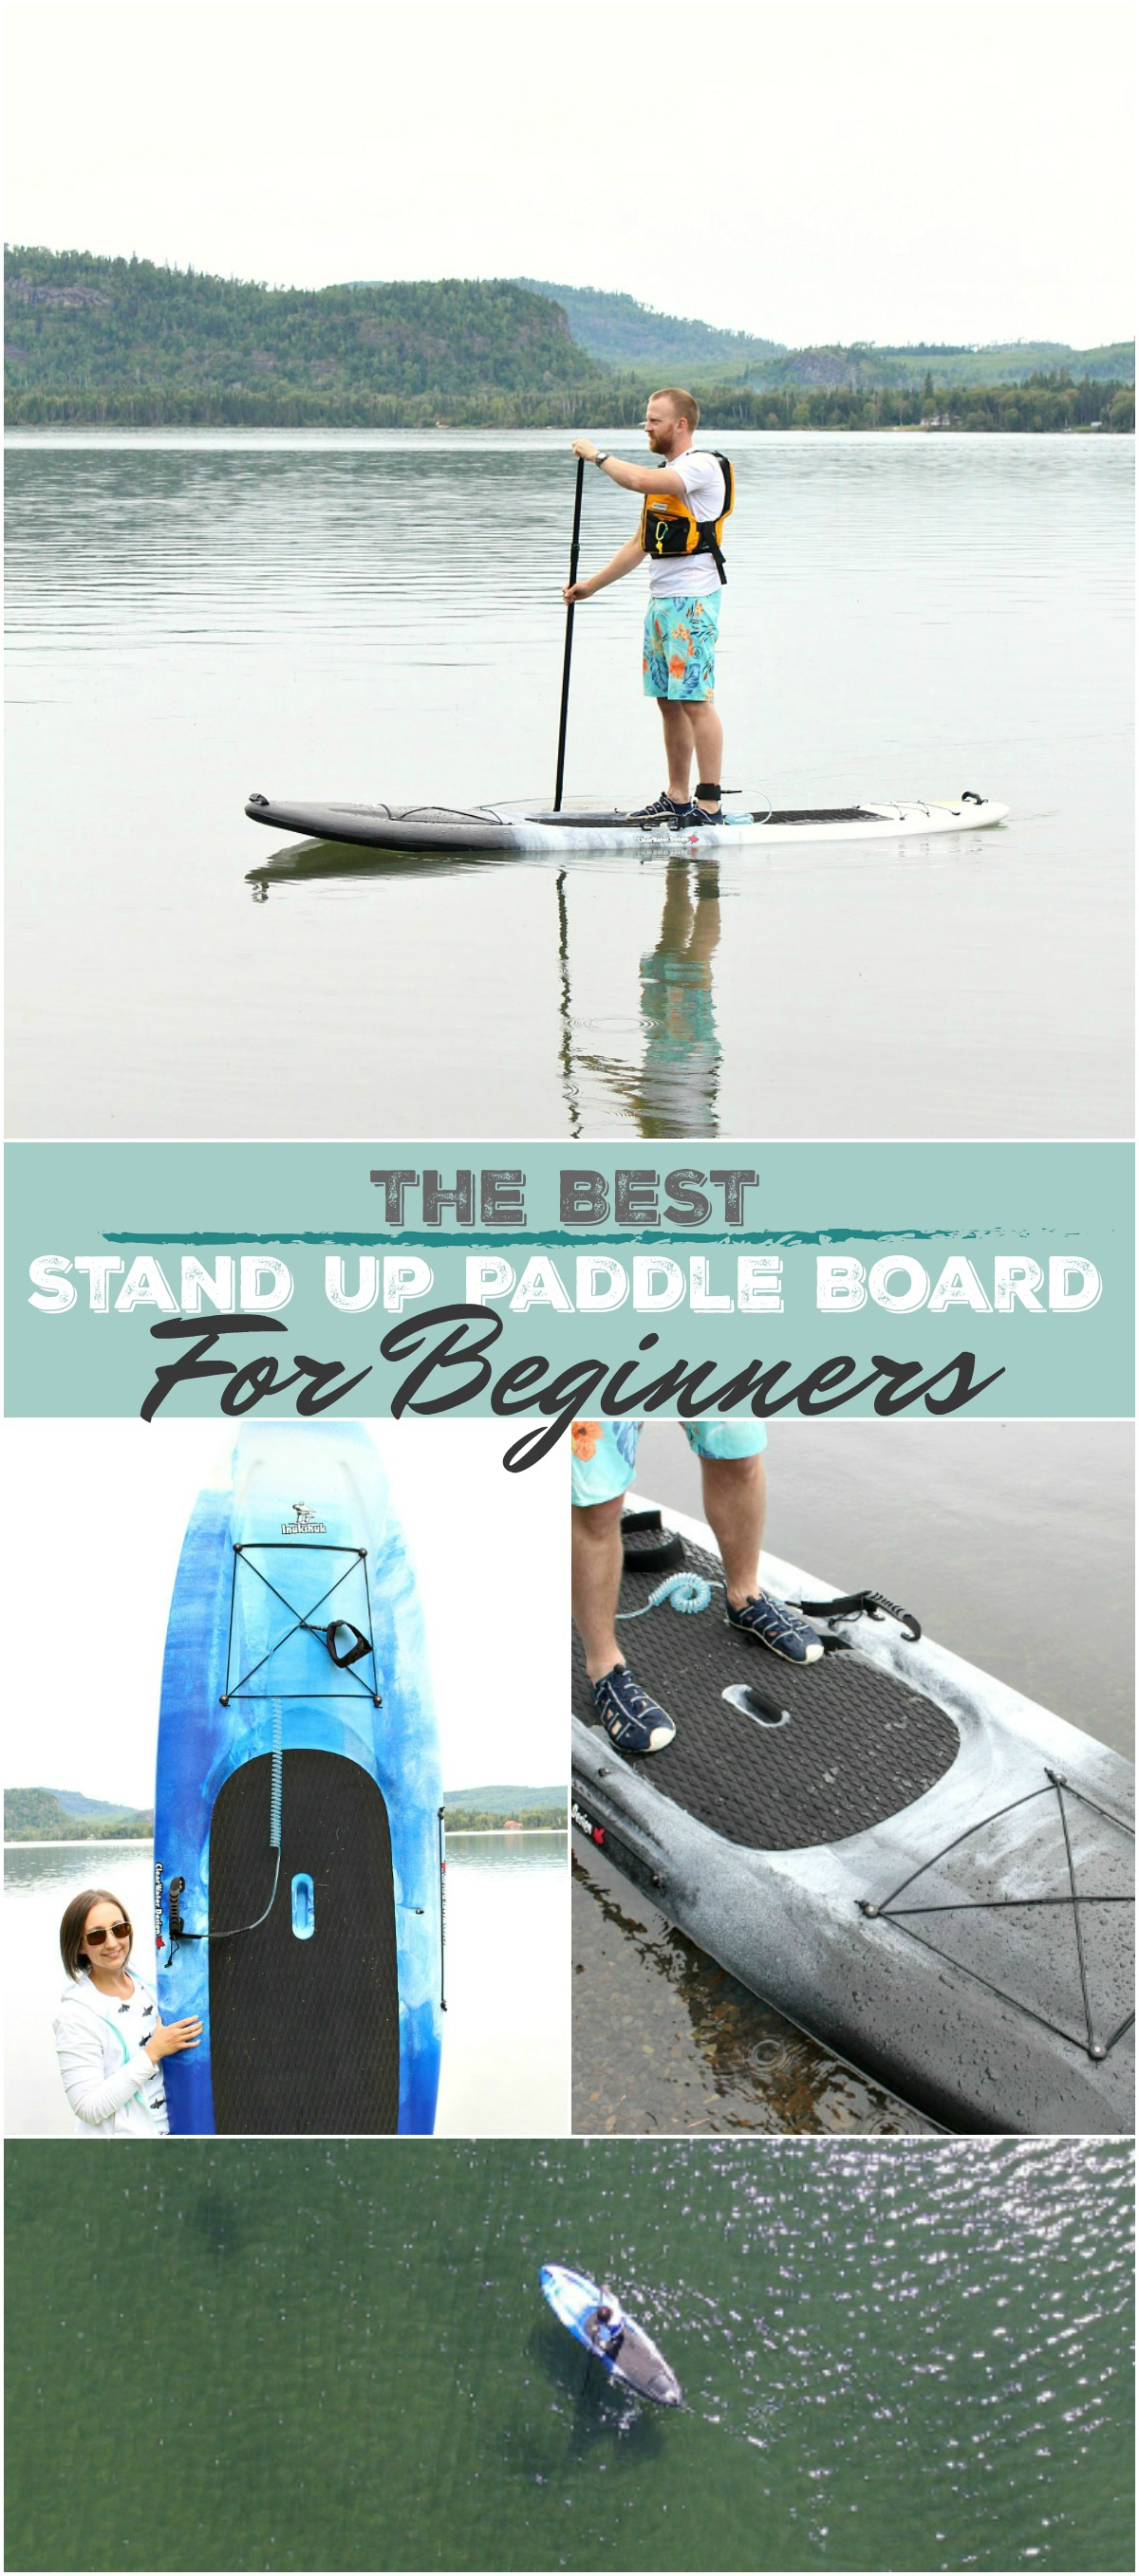 Best Stand Up Paddle Board for Beginners